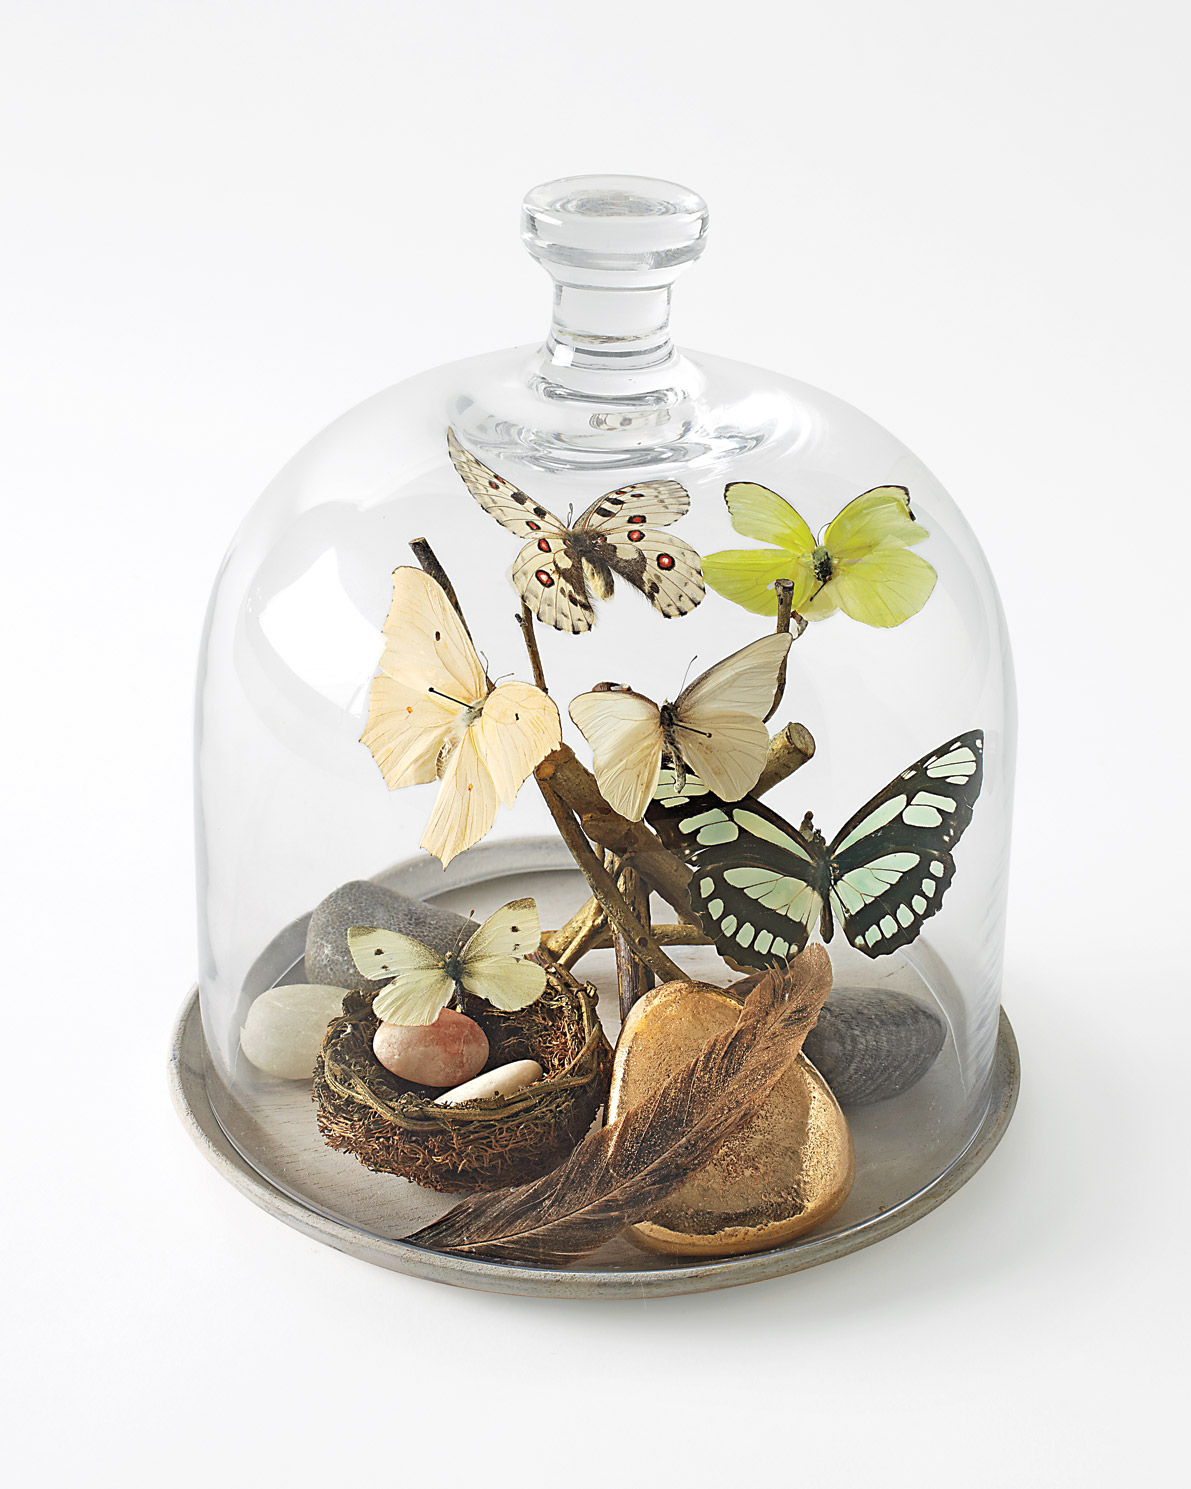 butterfly-dome-mld108210.jpg